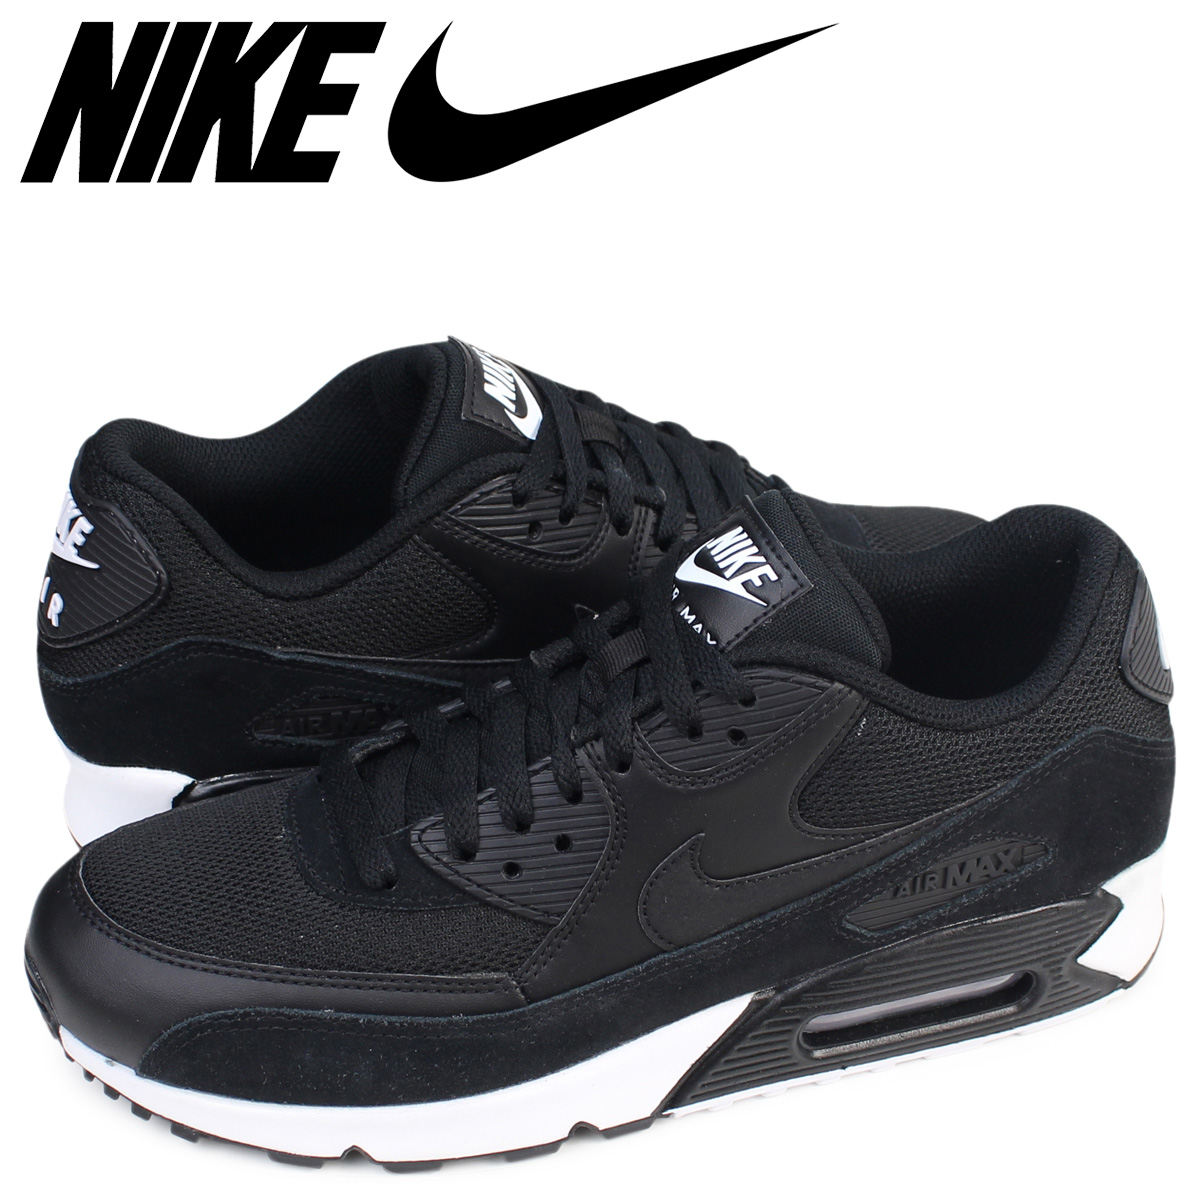 NIKE Kie Ney AMAX 90 men's sneakers AIR MAX 90 ESSENTIAL 537,384 077 shoes black black